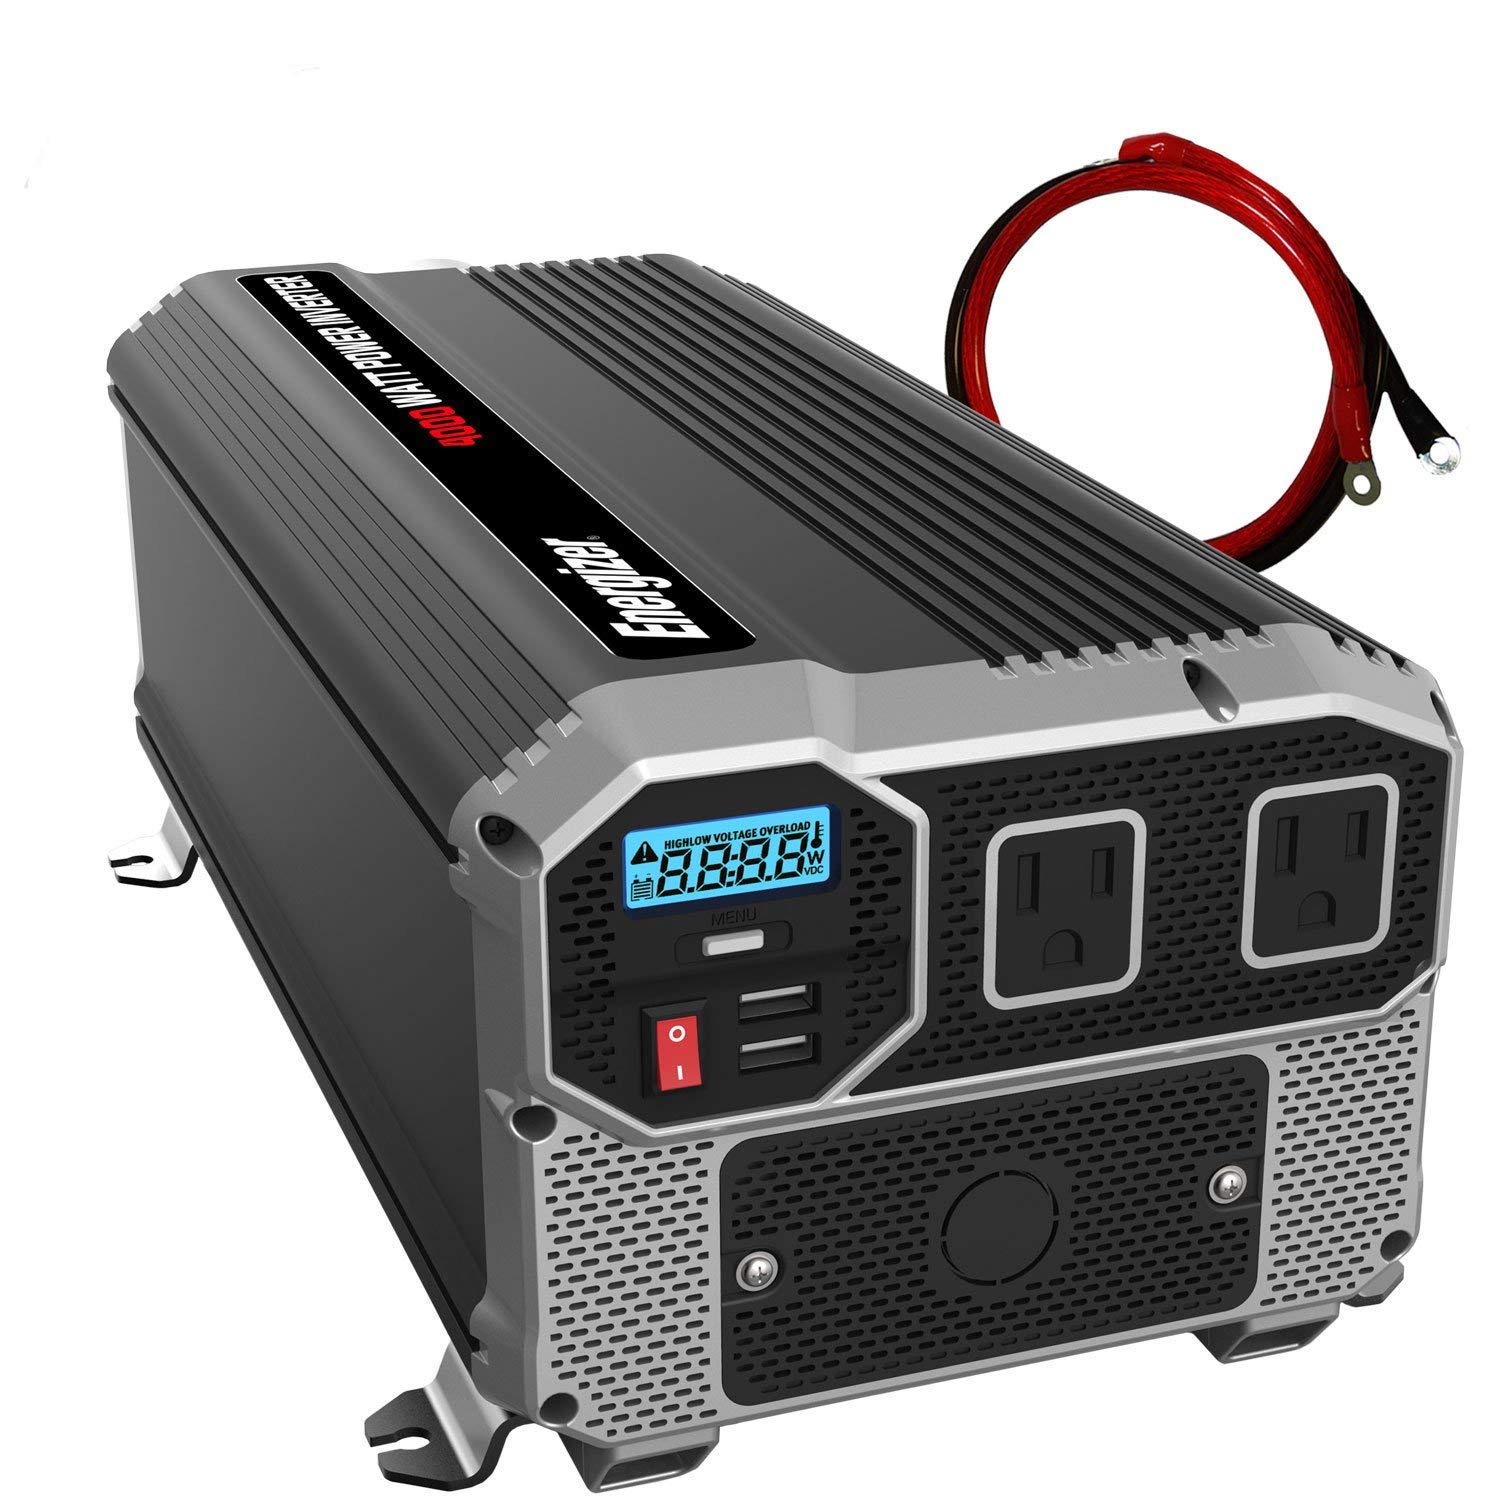 ENERGIZER 4000 Watt 12V Power Inverter}